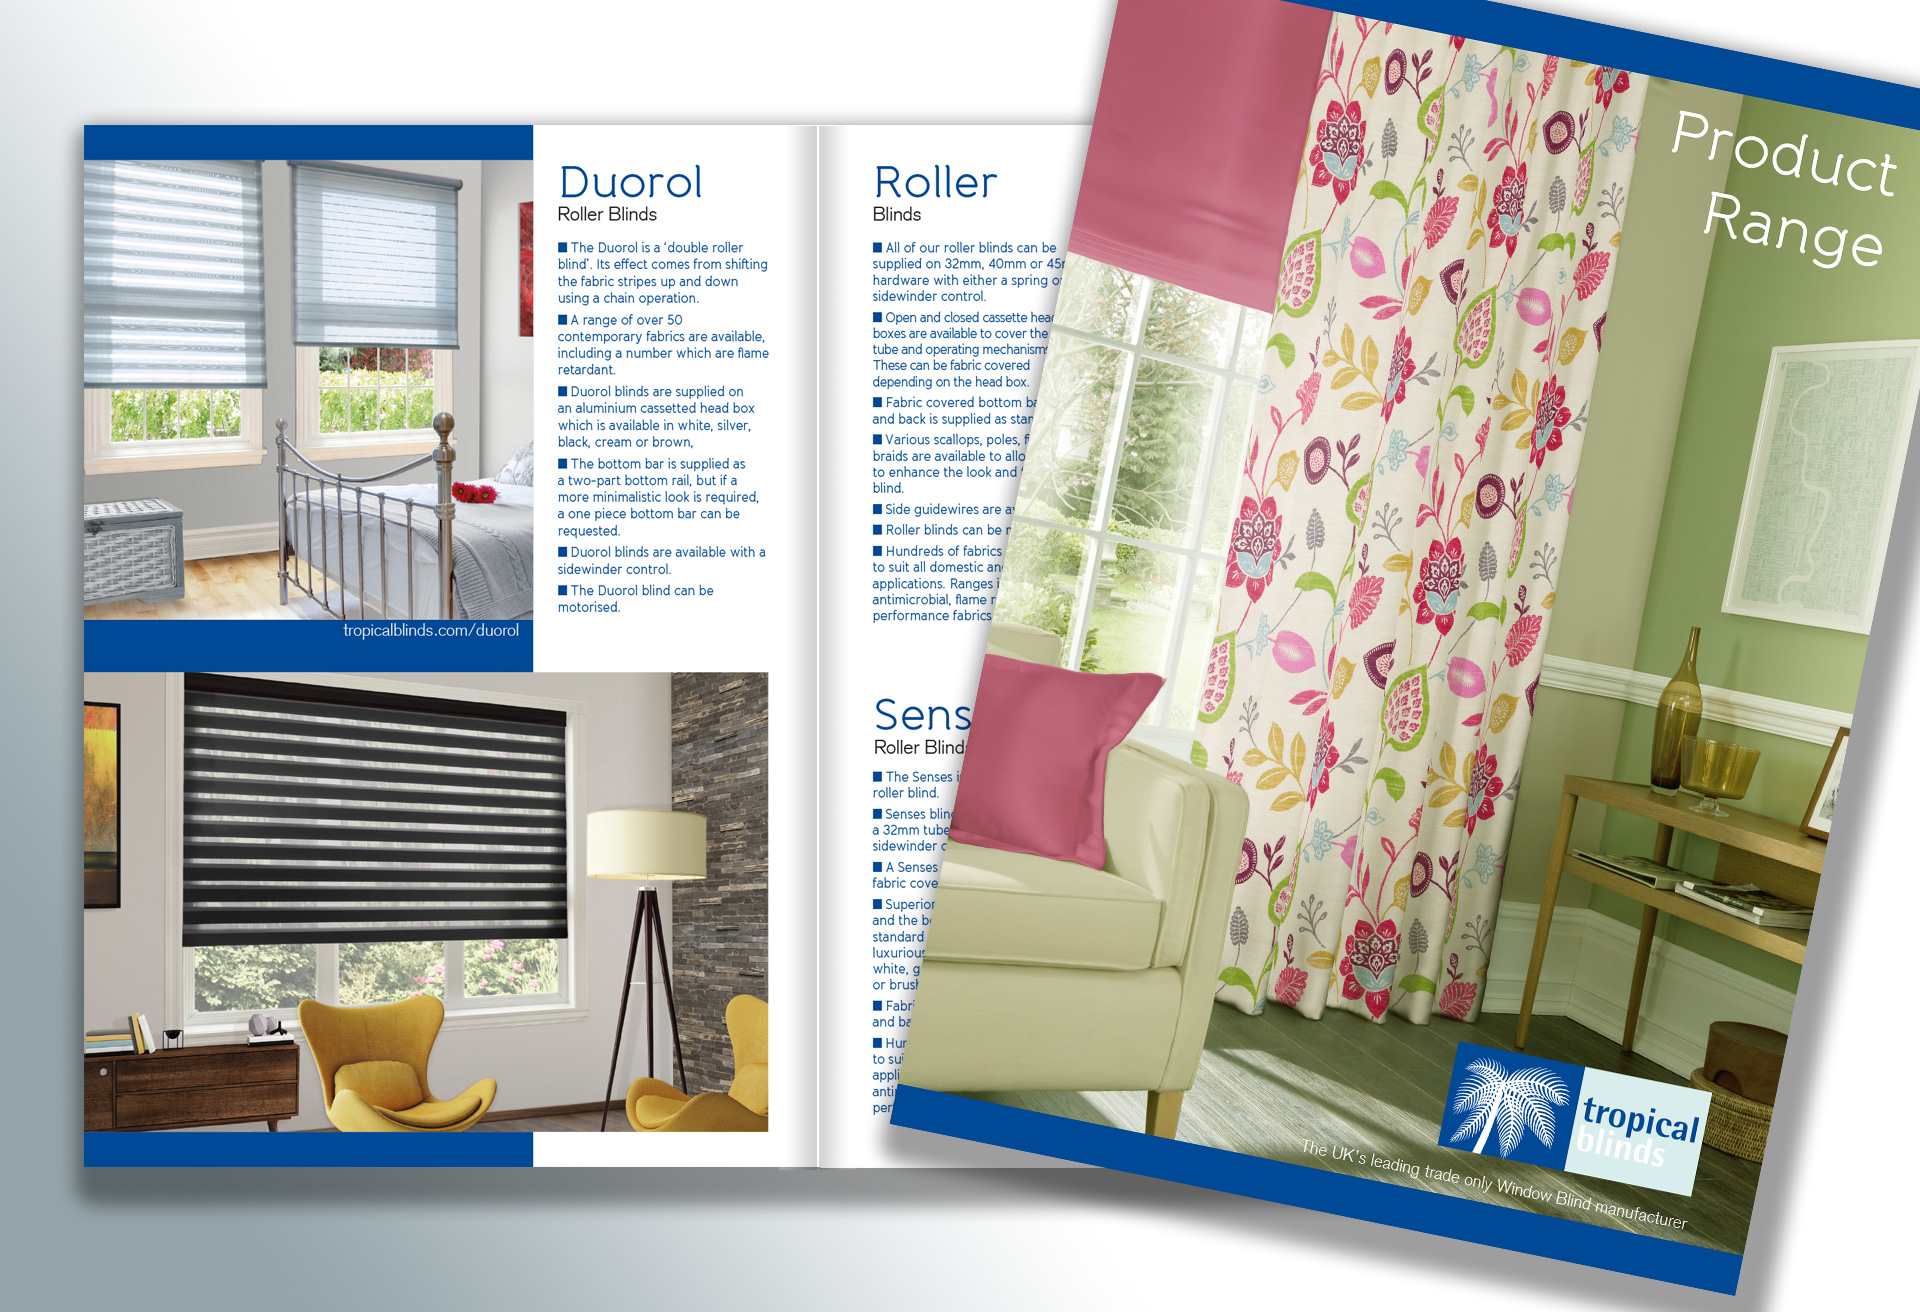 Tropical Blinds - Brochure design